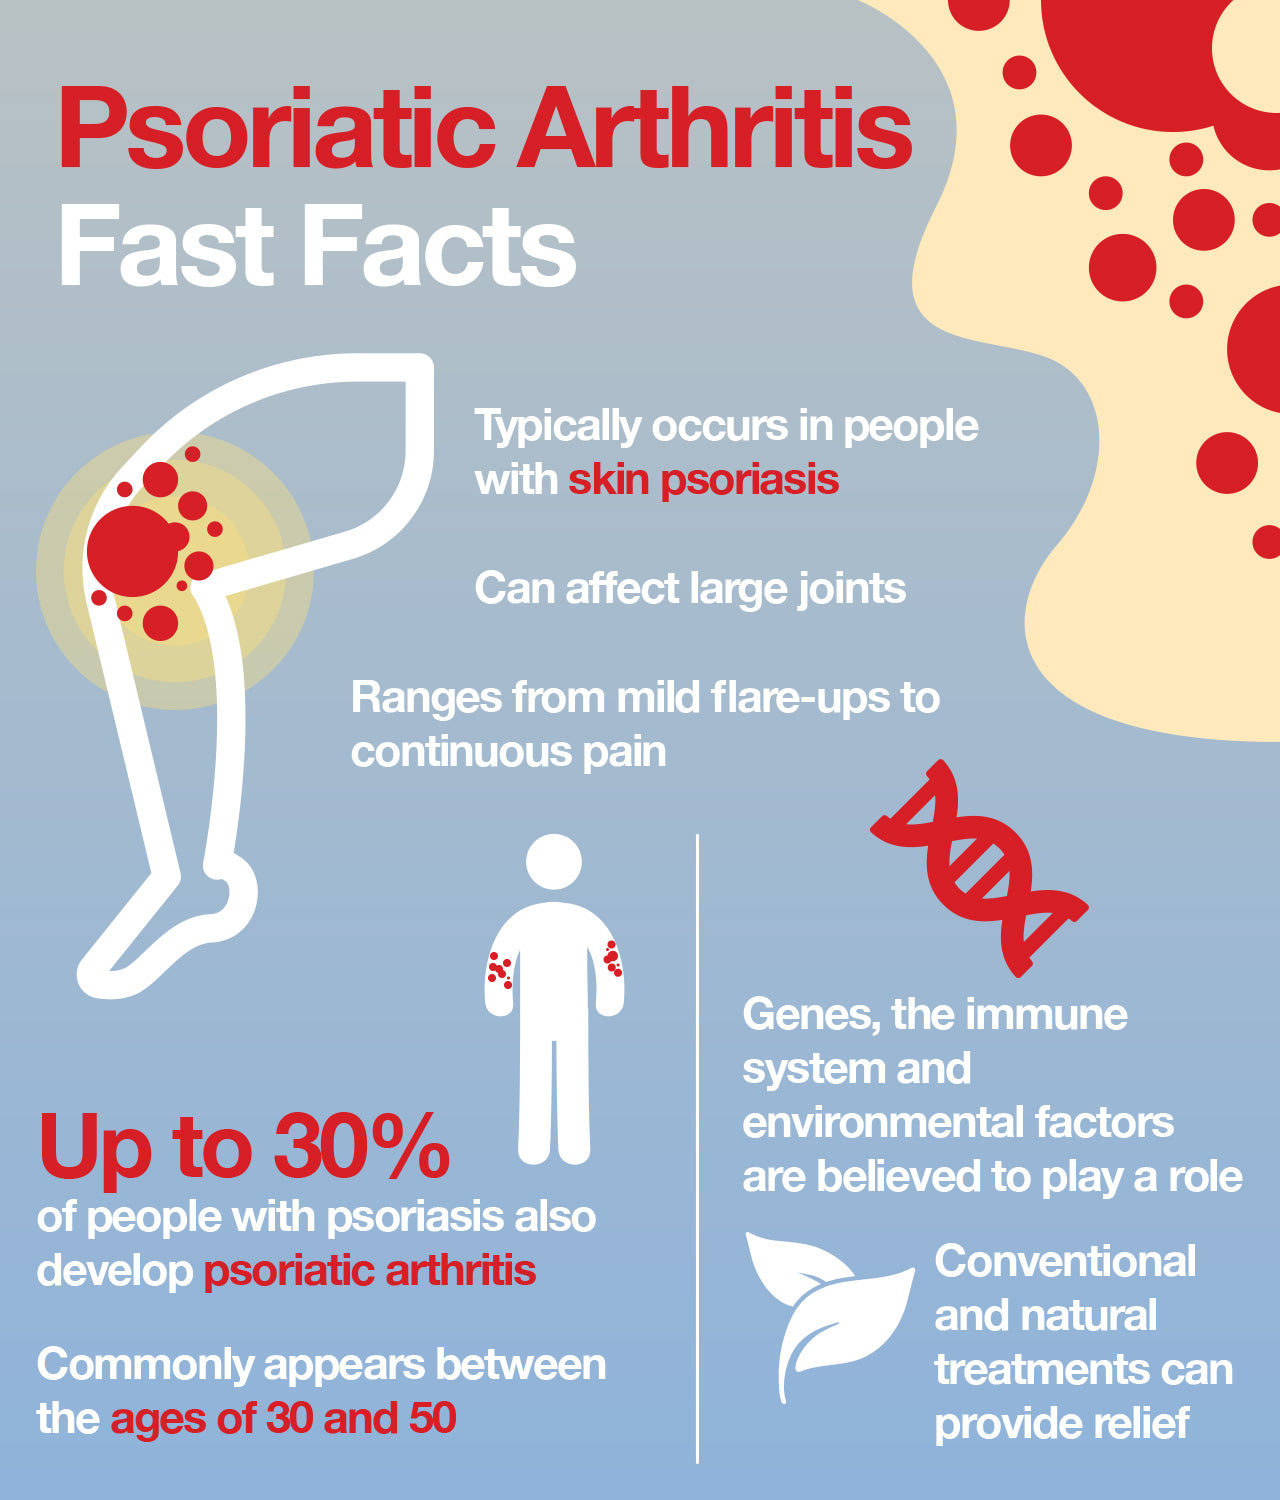 Psoriatic arthritis fast facts